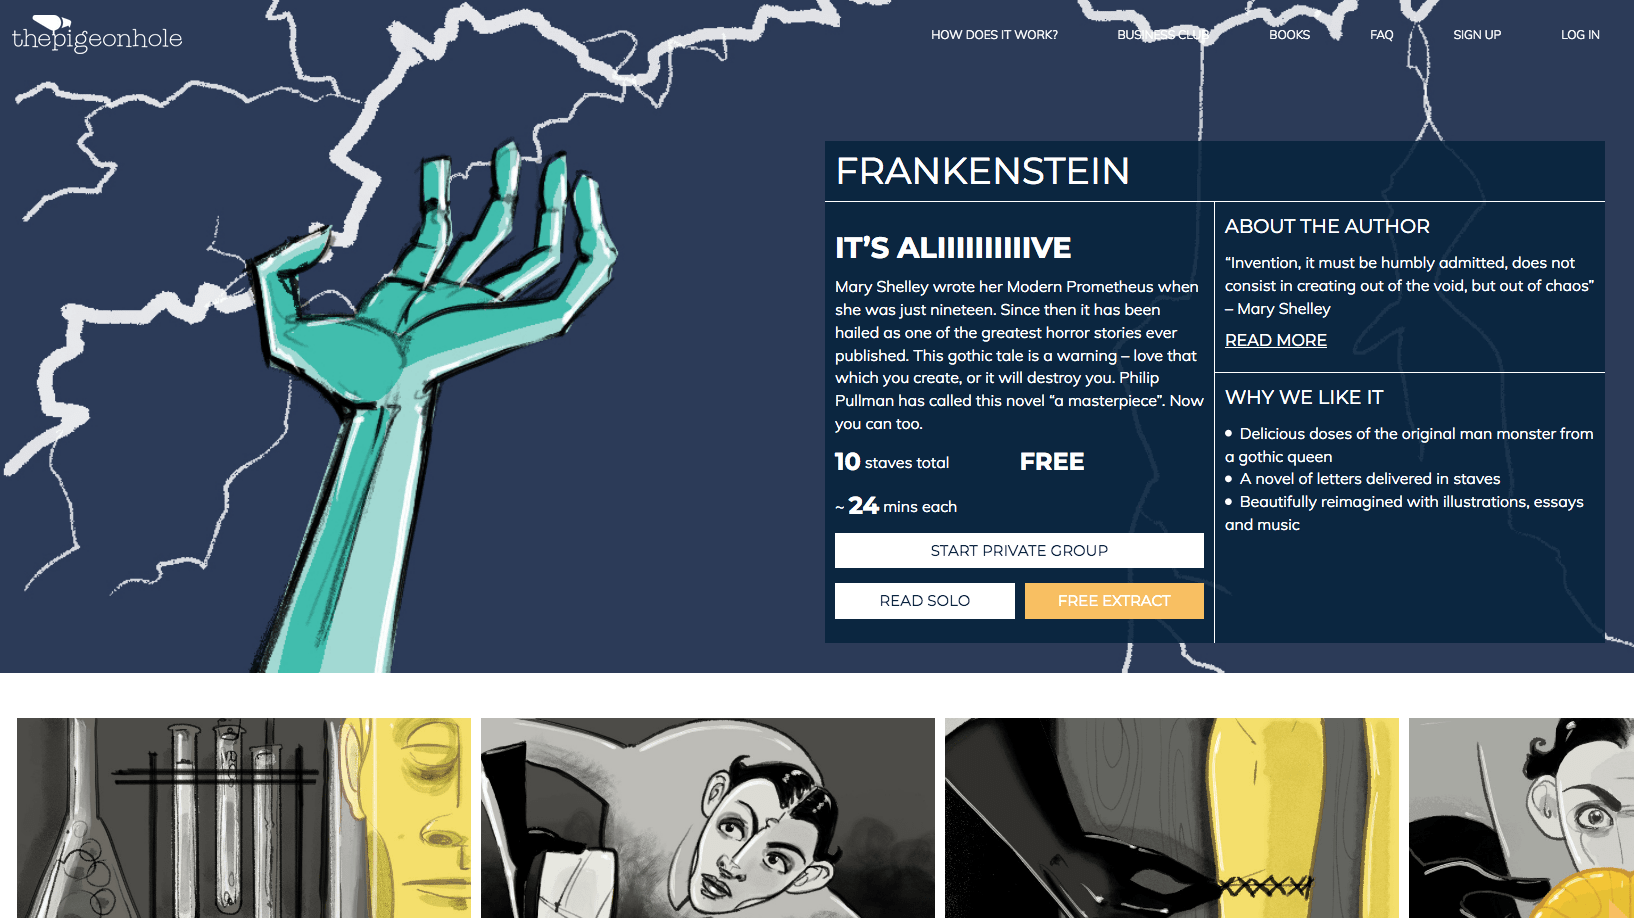 frankenstein - the pigeon hole - Series of illustrations for this classic piece featured online at The Pigeon Hole